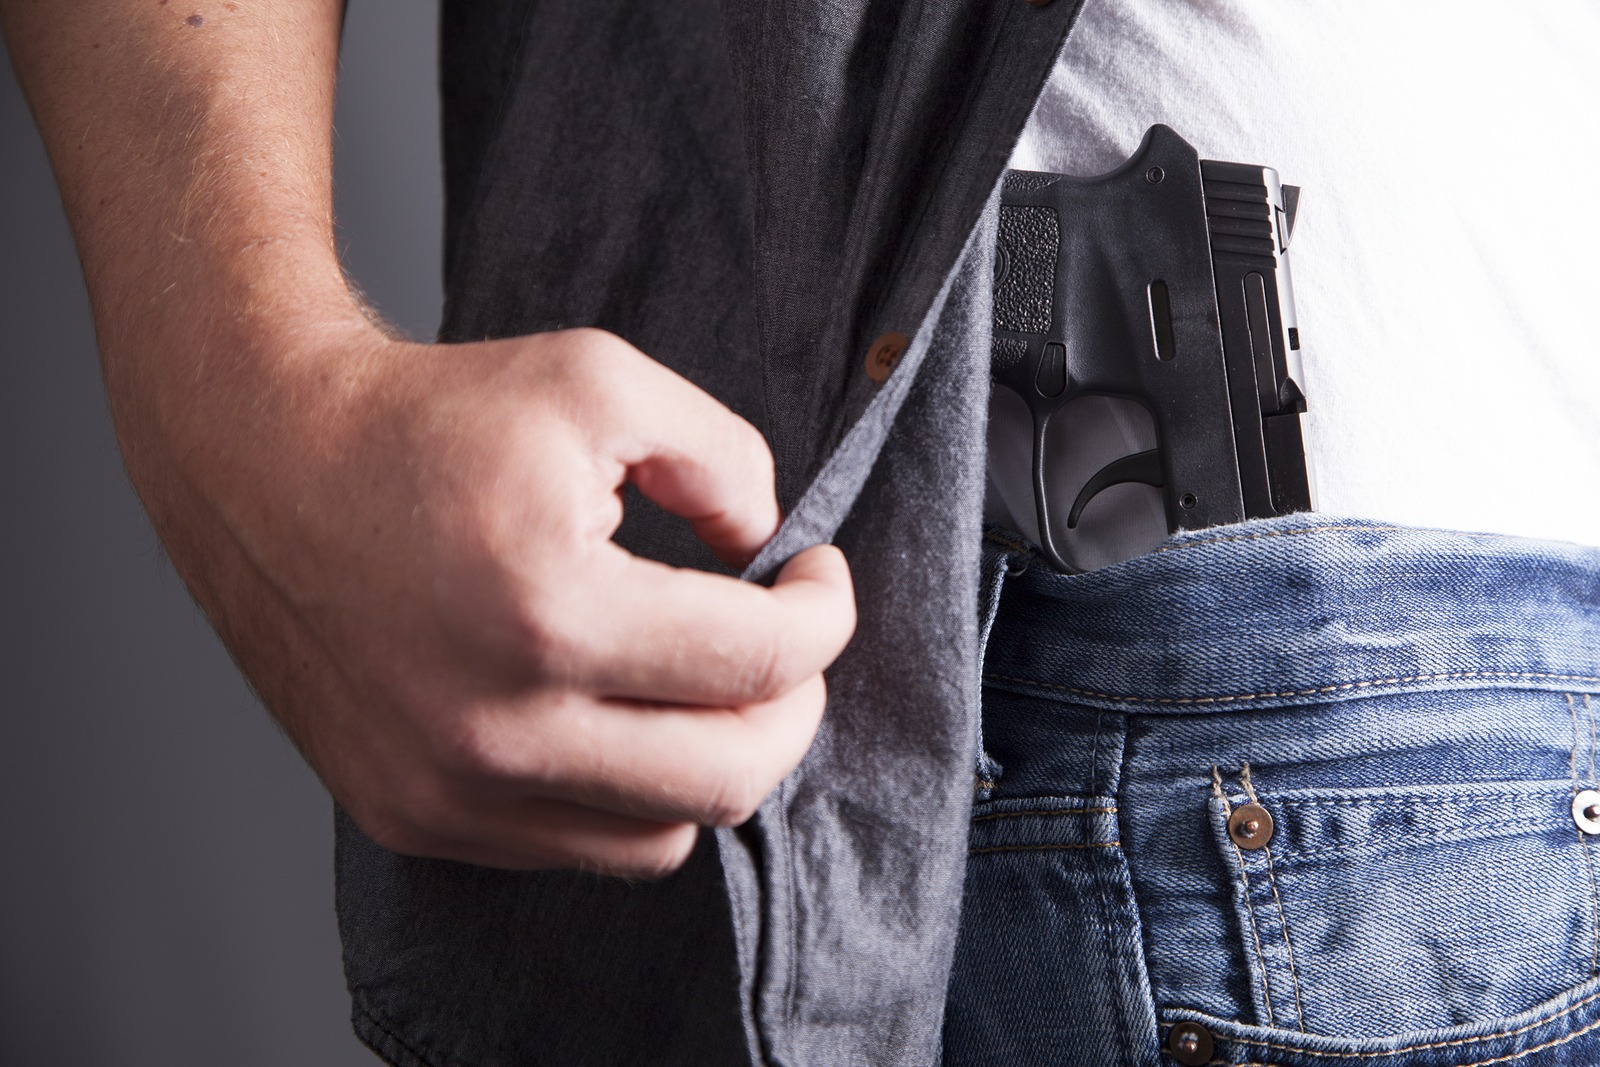 Concealed Handgun - What To Do if You're Pulled Over in NJ